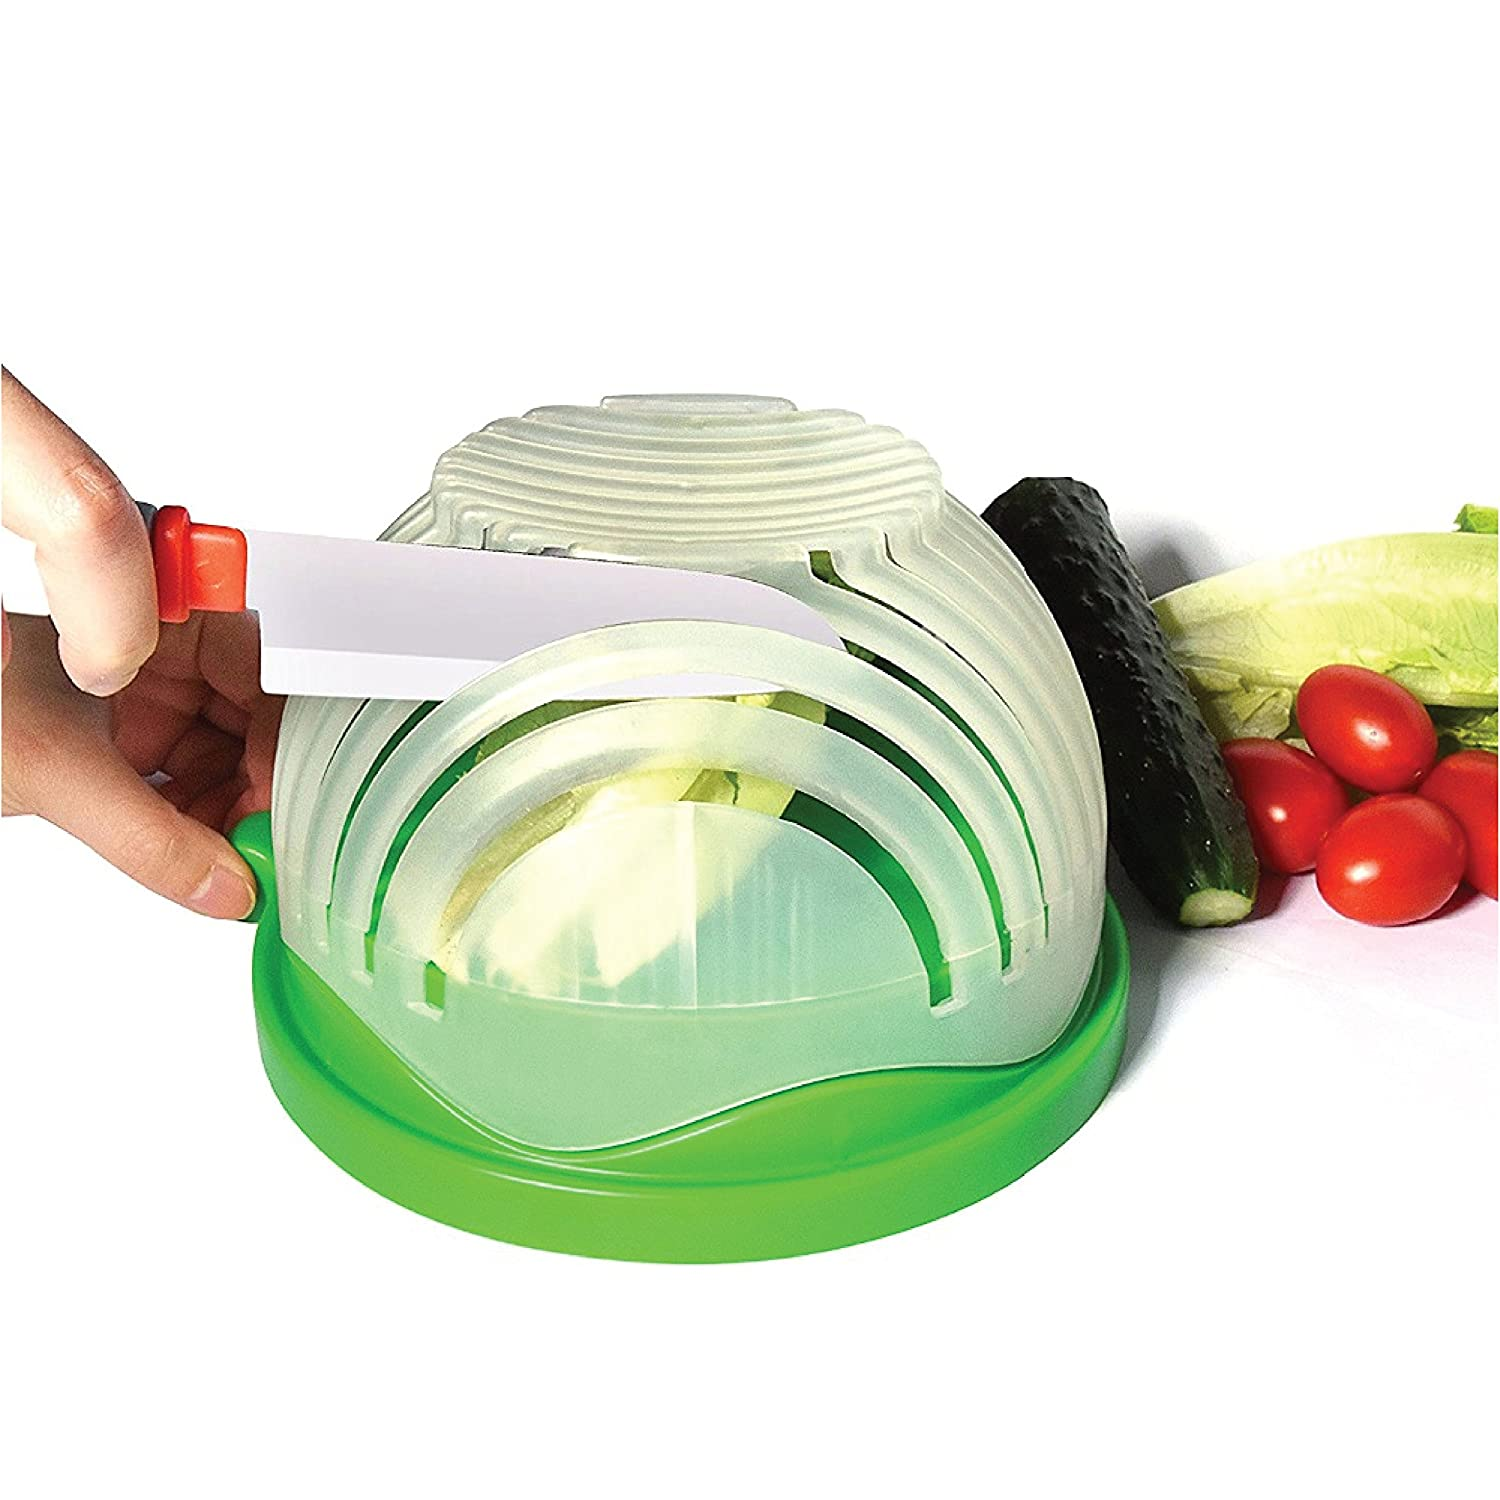 Salad Cutter Bowl - Easily Wash and Cross Cut Lettuce for Fast Salad Preparation Humble Homeware